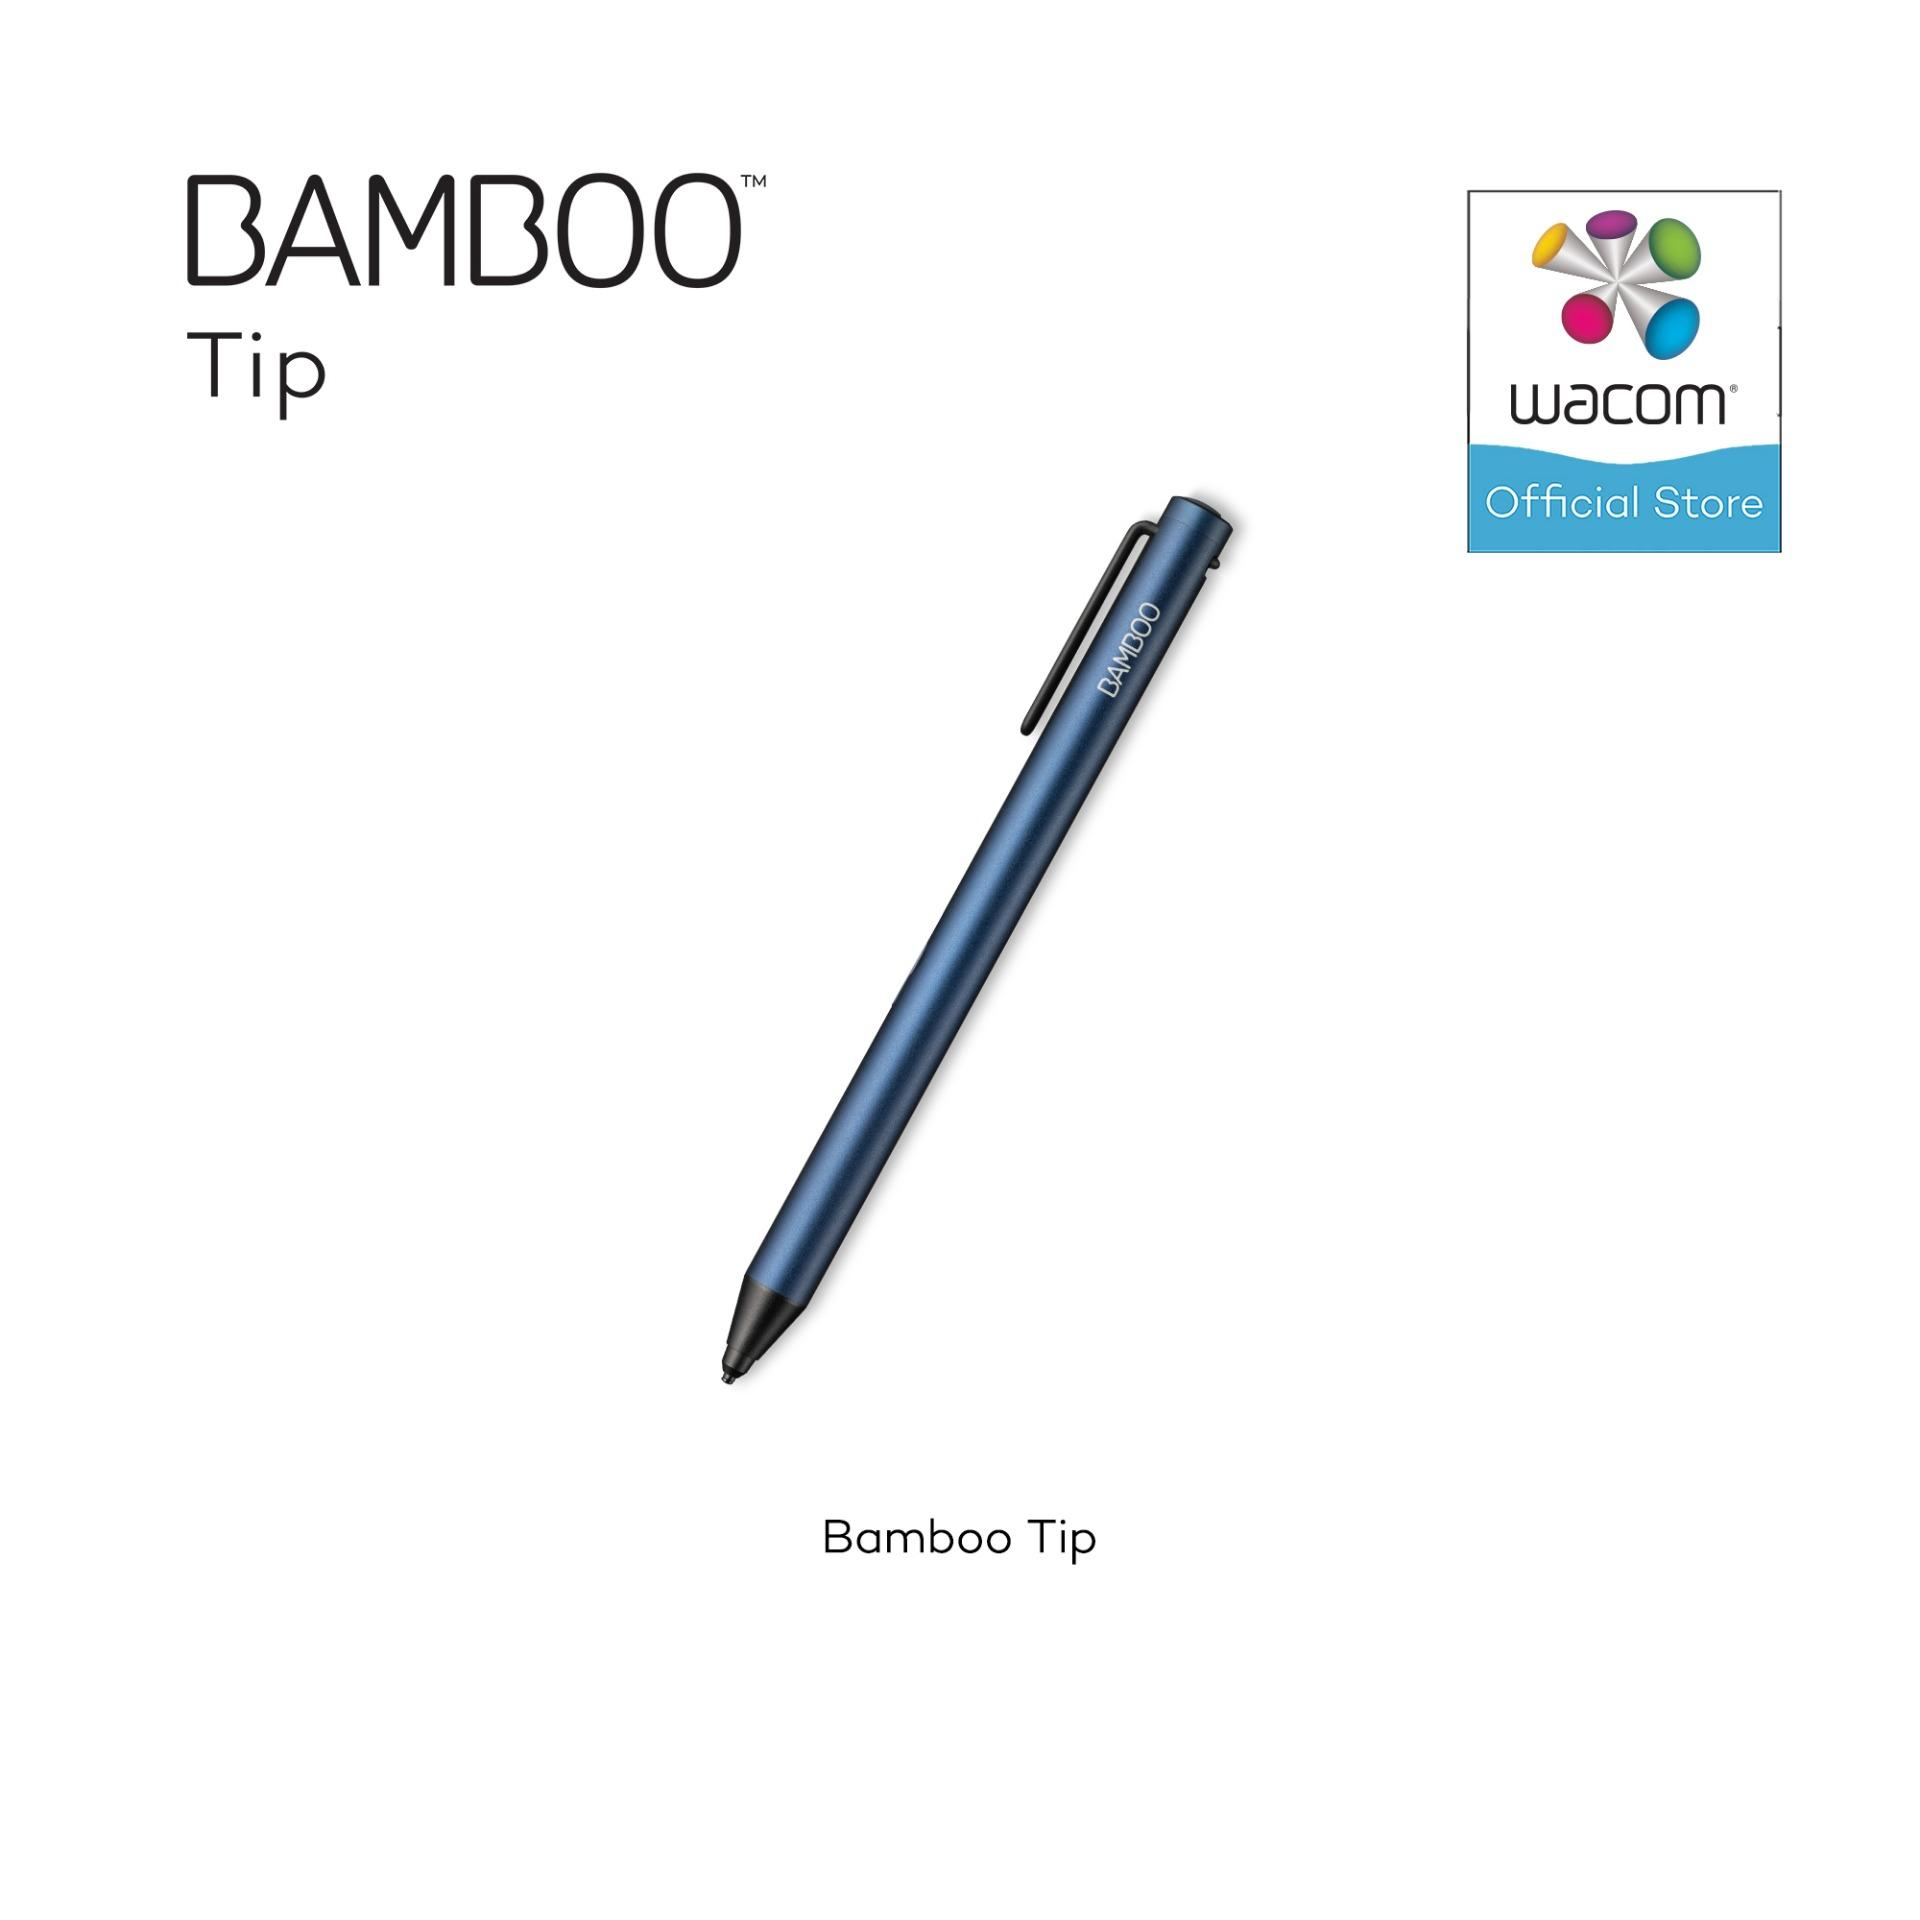 Bamboo Tip Wacom Stylus (CS-710) Optimized For iOS and Android